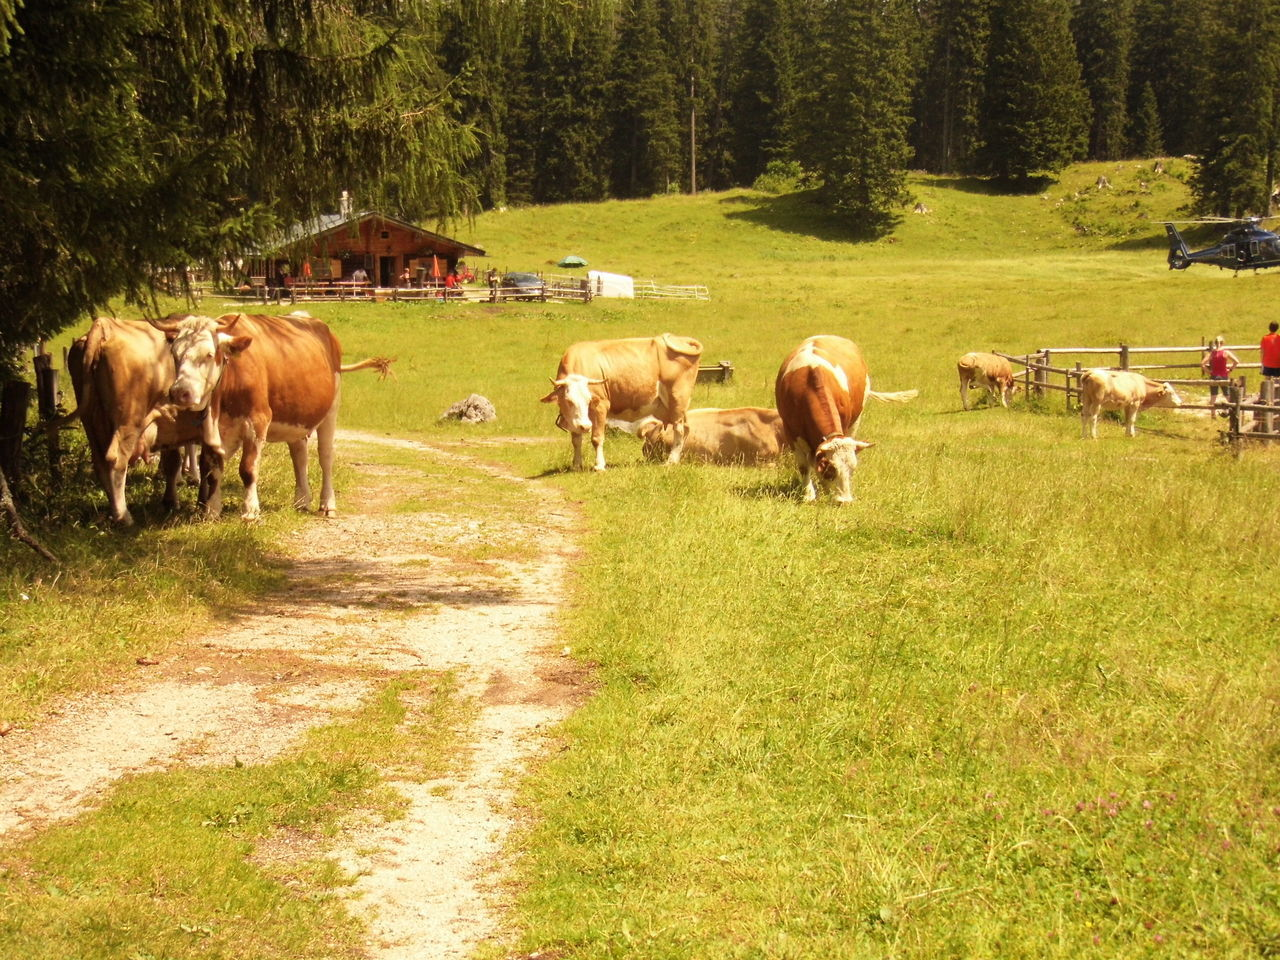 Caramel Coloured Cows Cows In A Field Farm Farmer Field Forest Way Green Trees Background